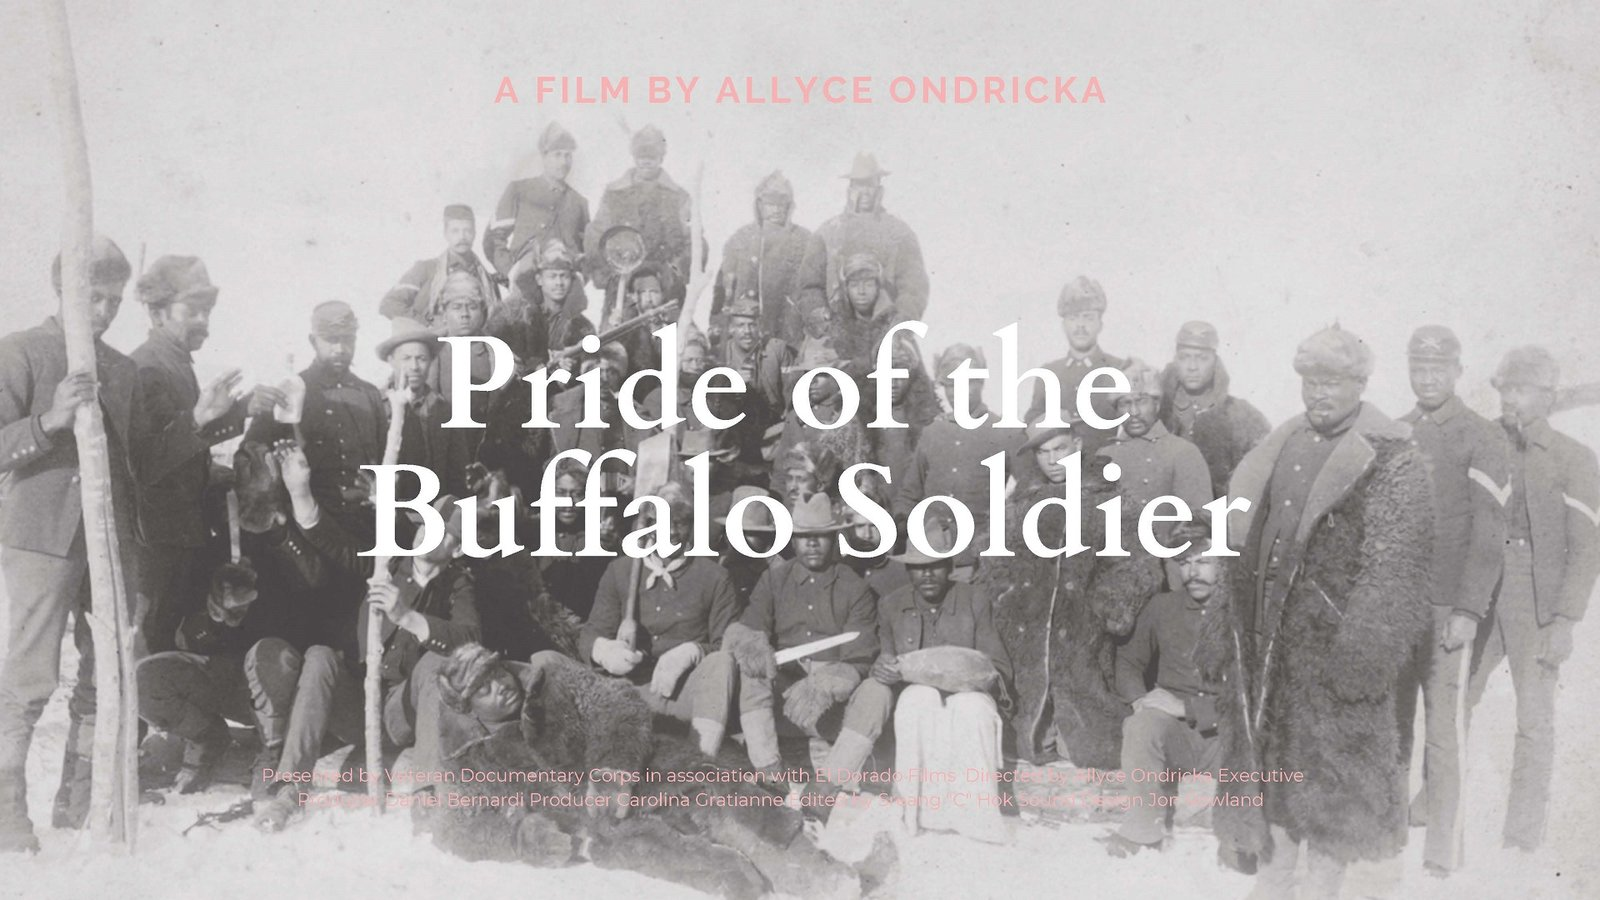 Pride of the Buffalo Soldier - African American Soldiers Facing Discrimination